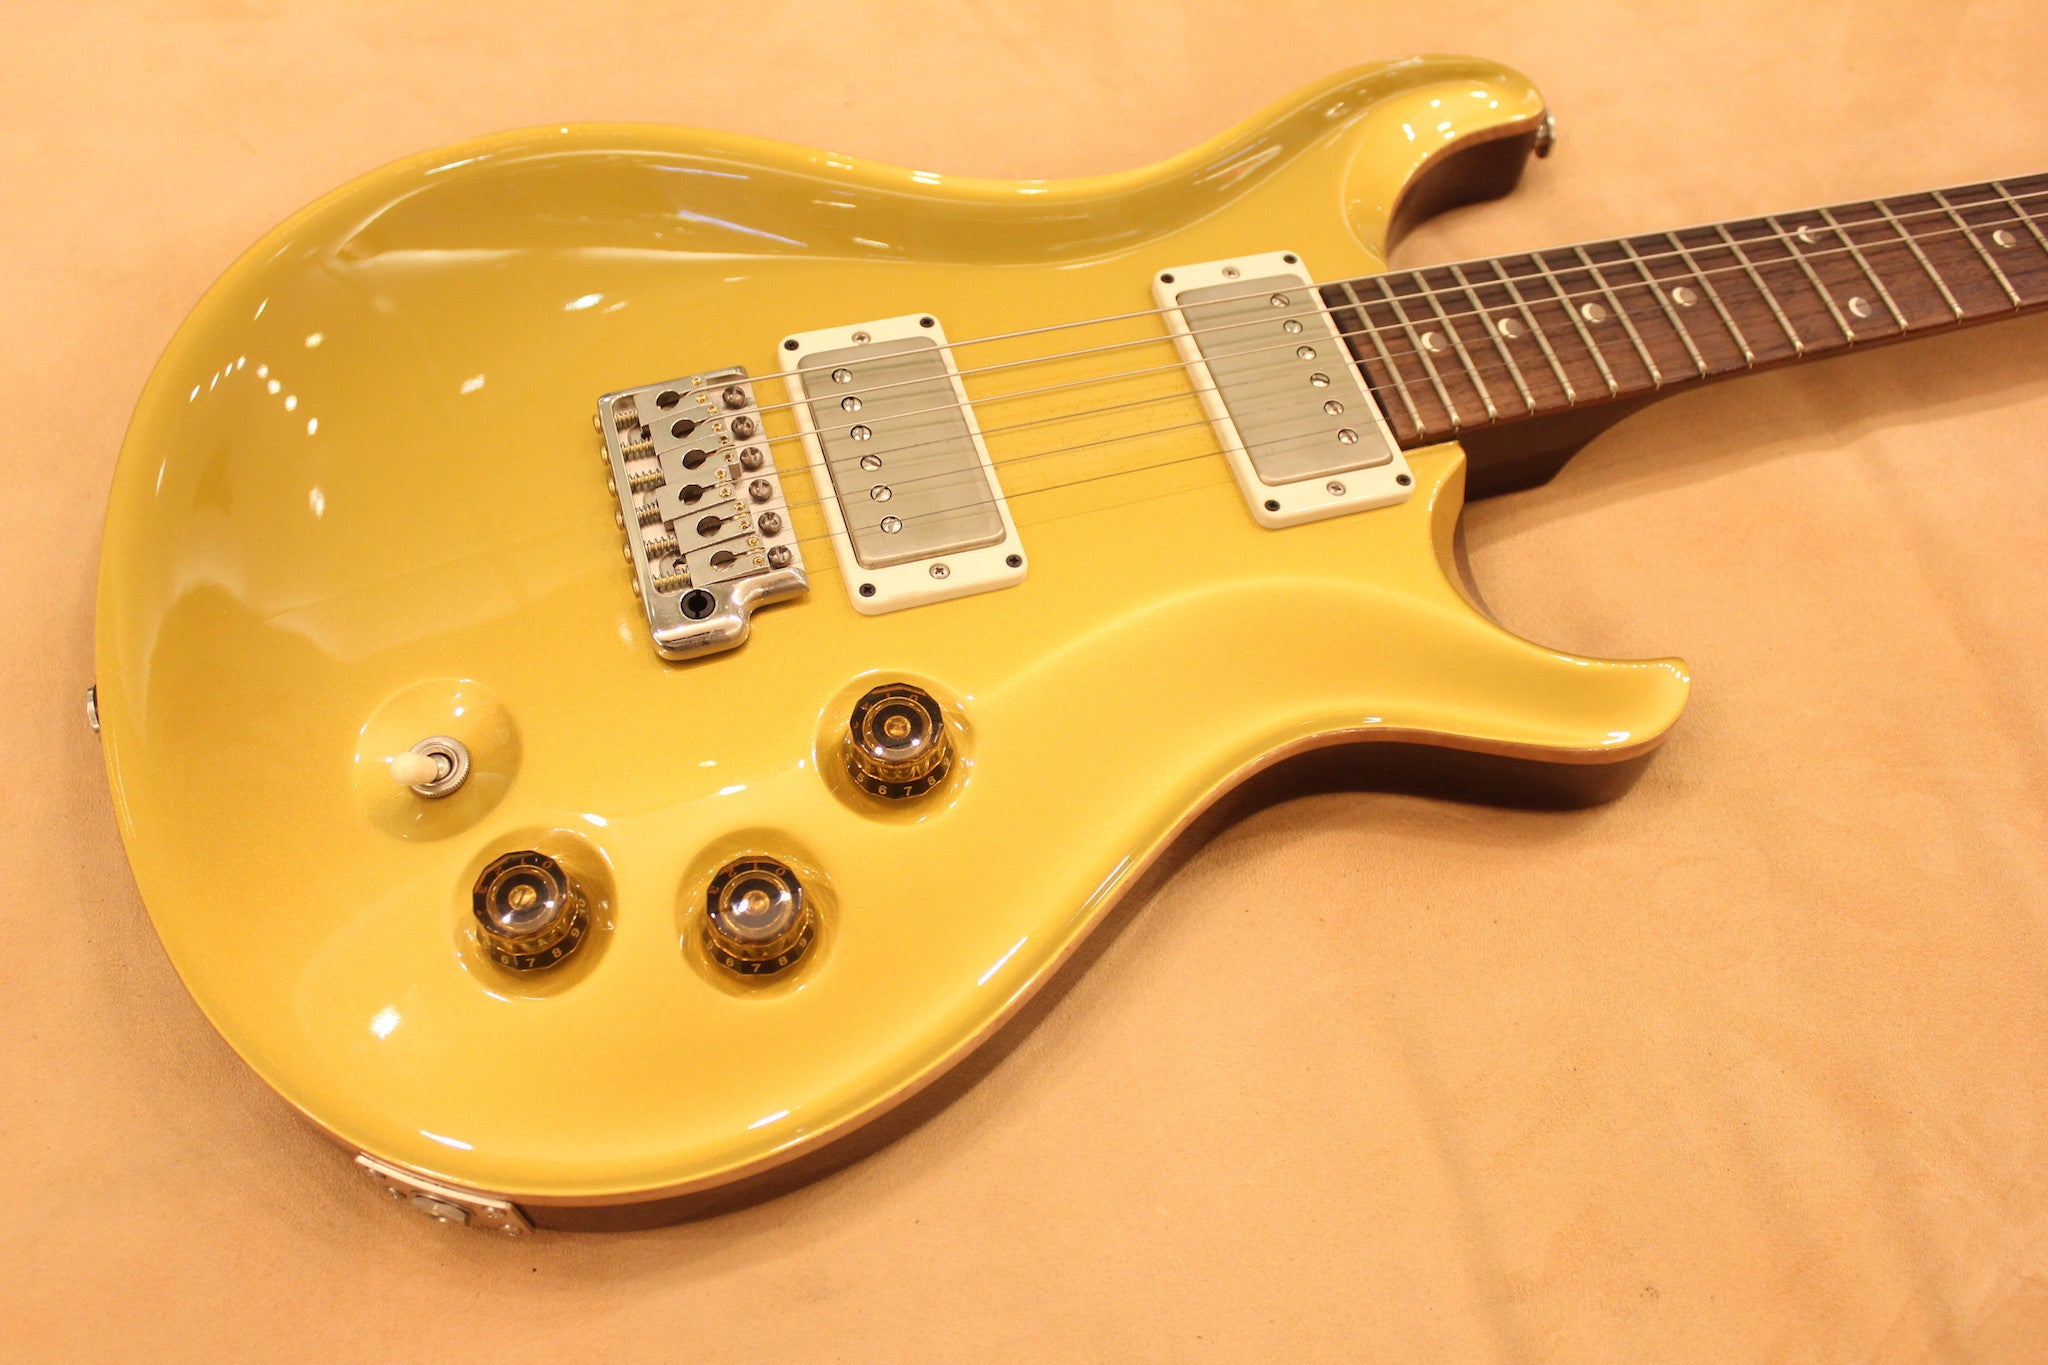 PRS DGT, moon inlays, Gold Top sn 192577 - HIENDGUITAR   PRS GUITAR